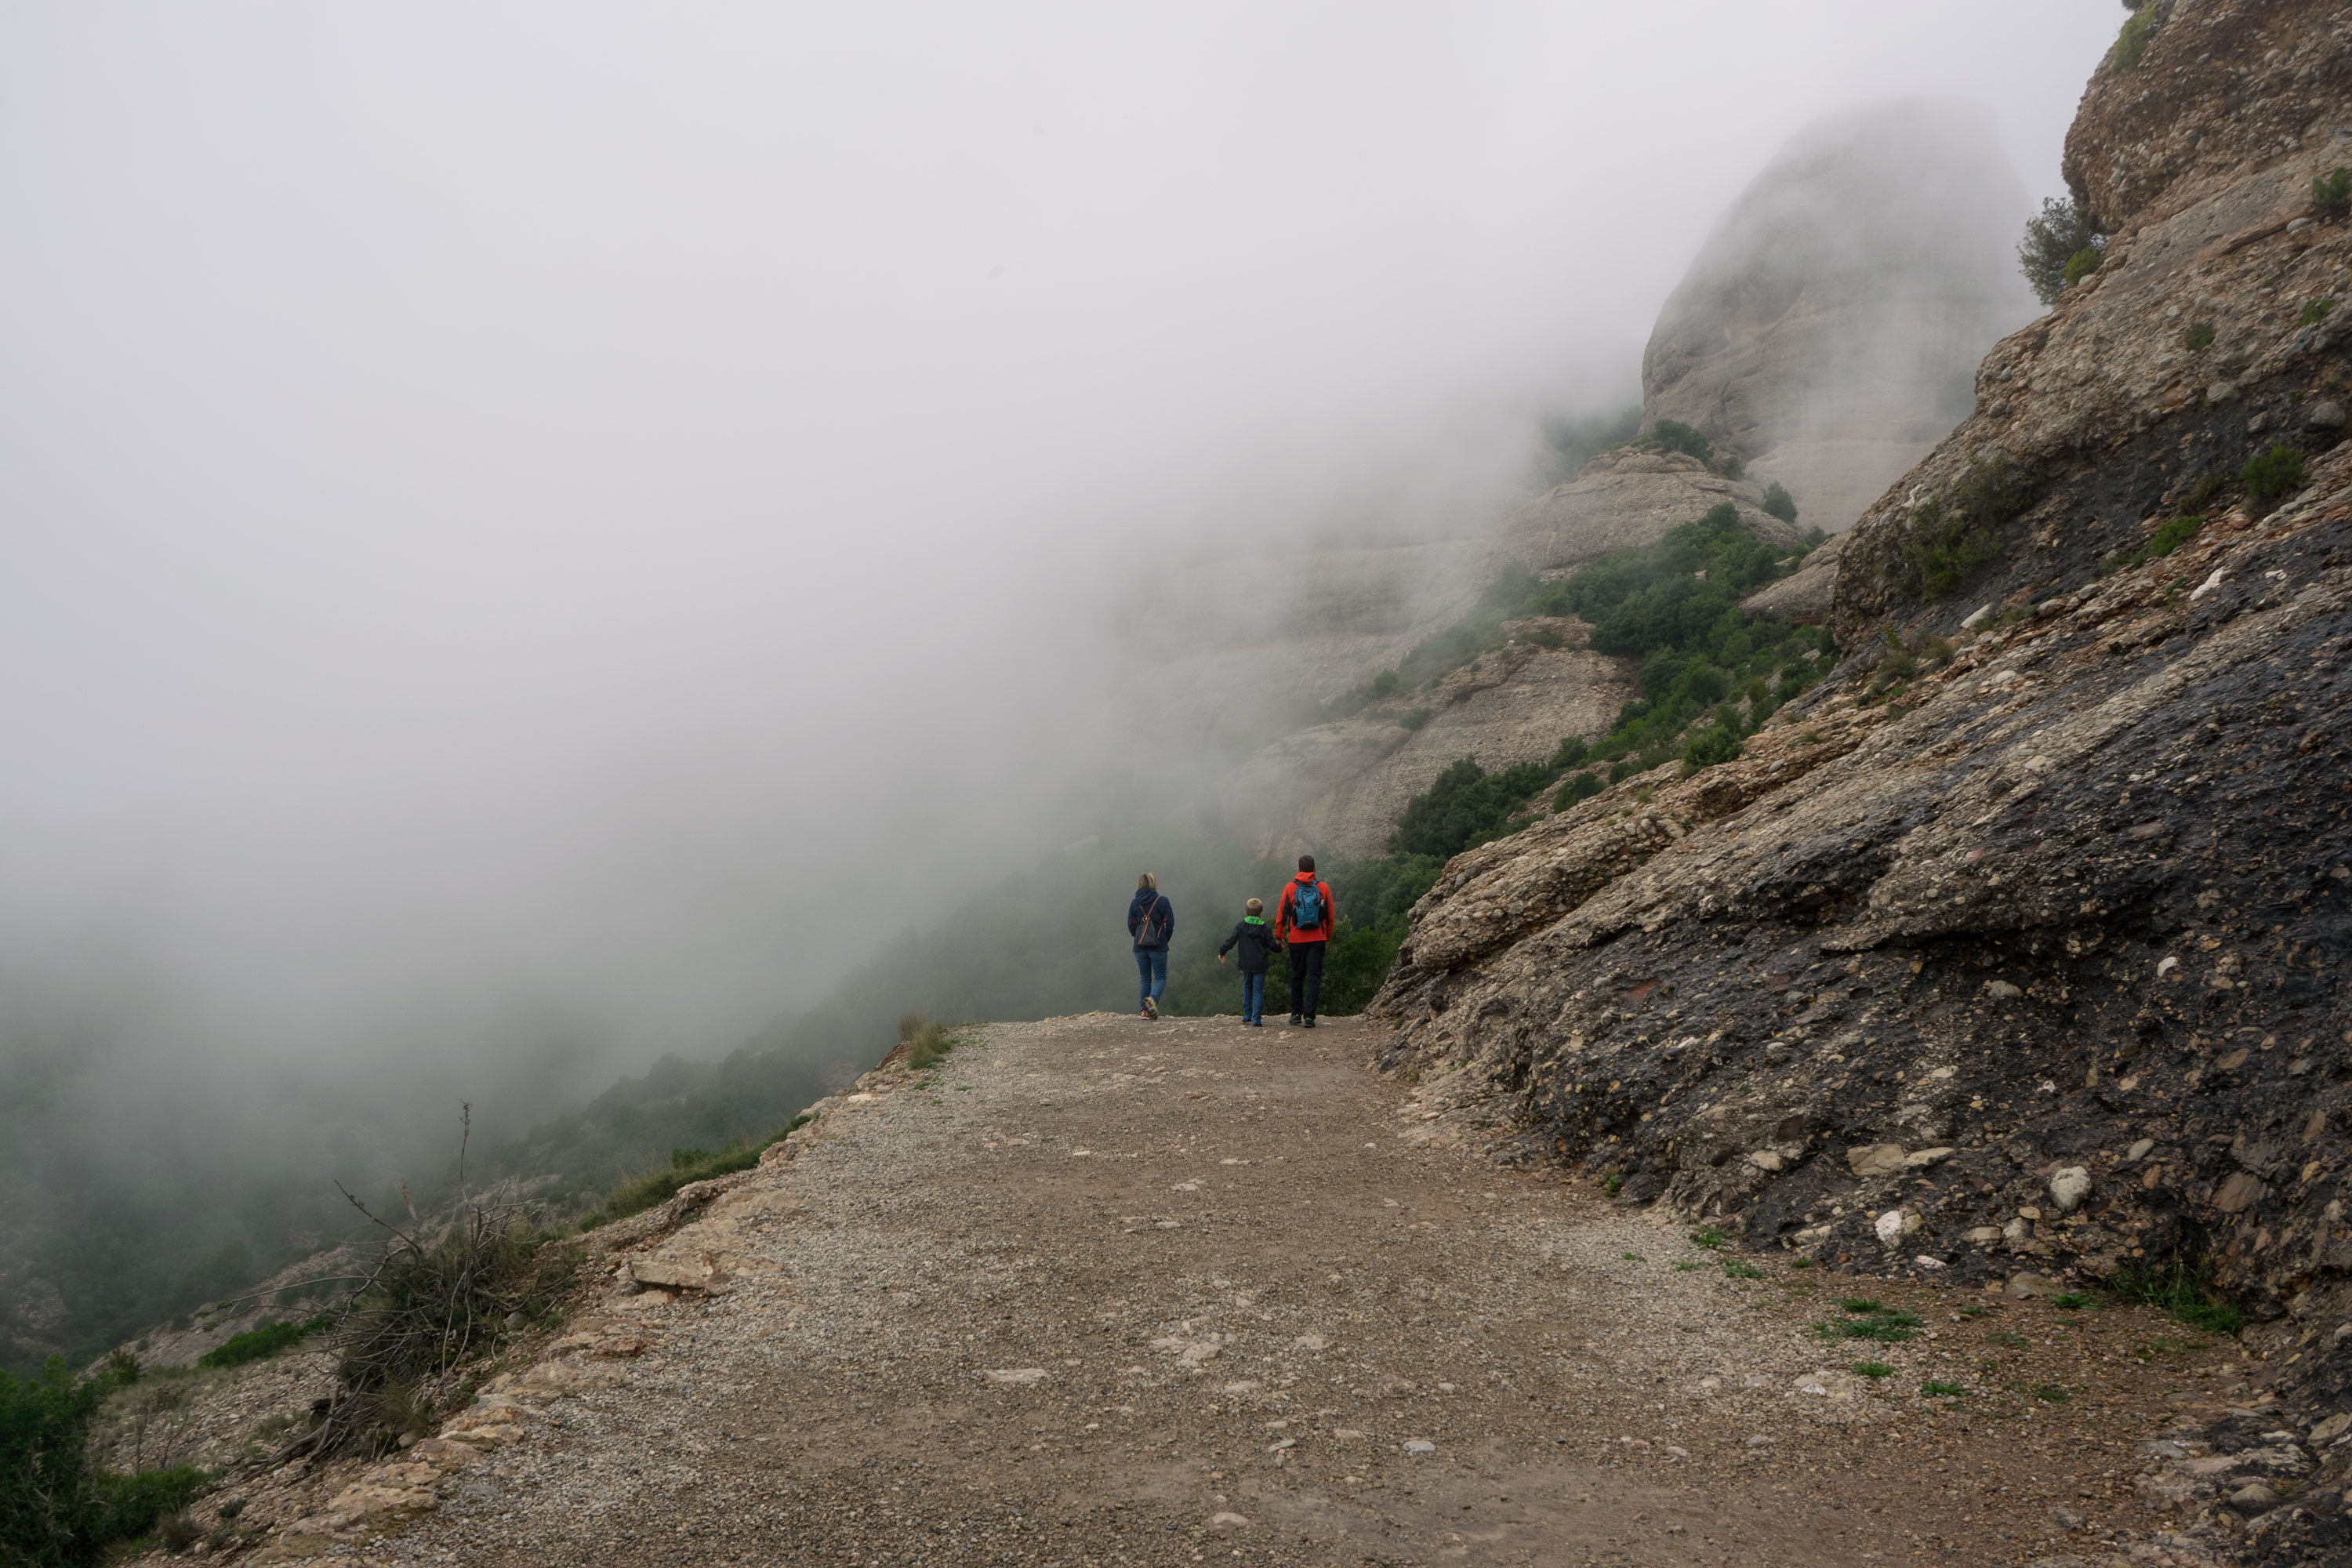 Family hiking the foggy Montserrat